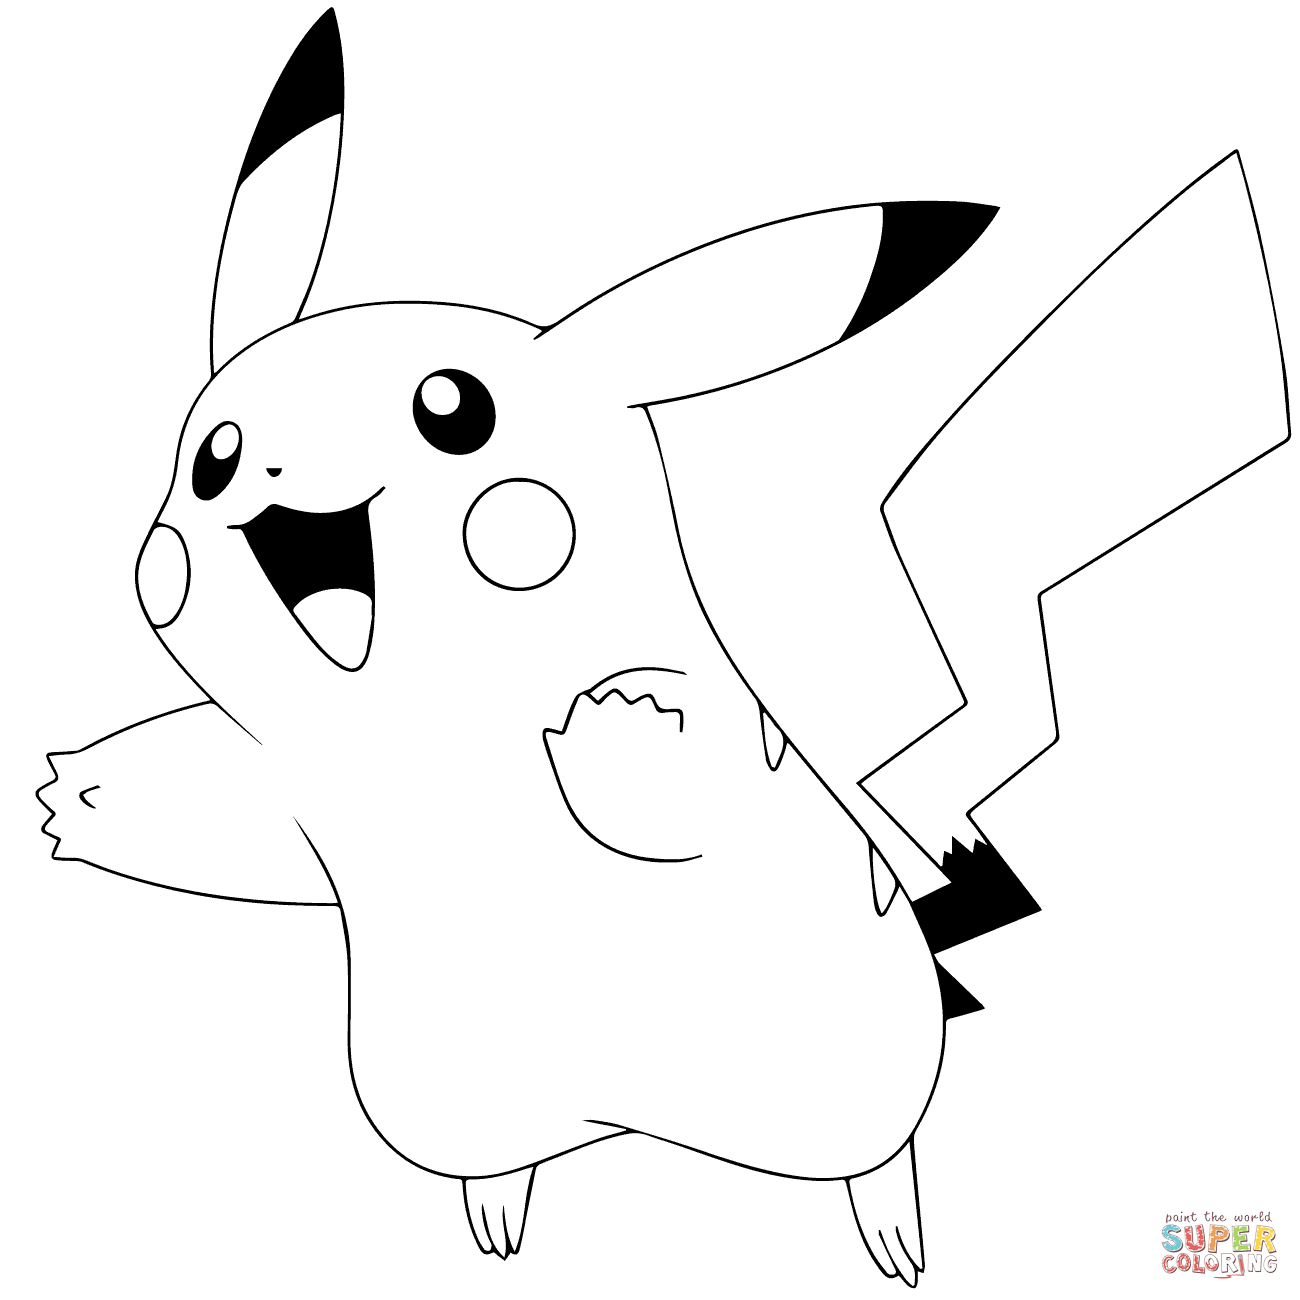 pikachu drawing coloring pages pikachu sketch by rileyjay on deviantart pages coloring drawing pikachu